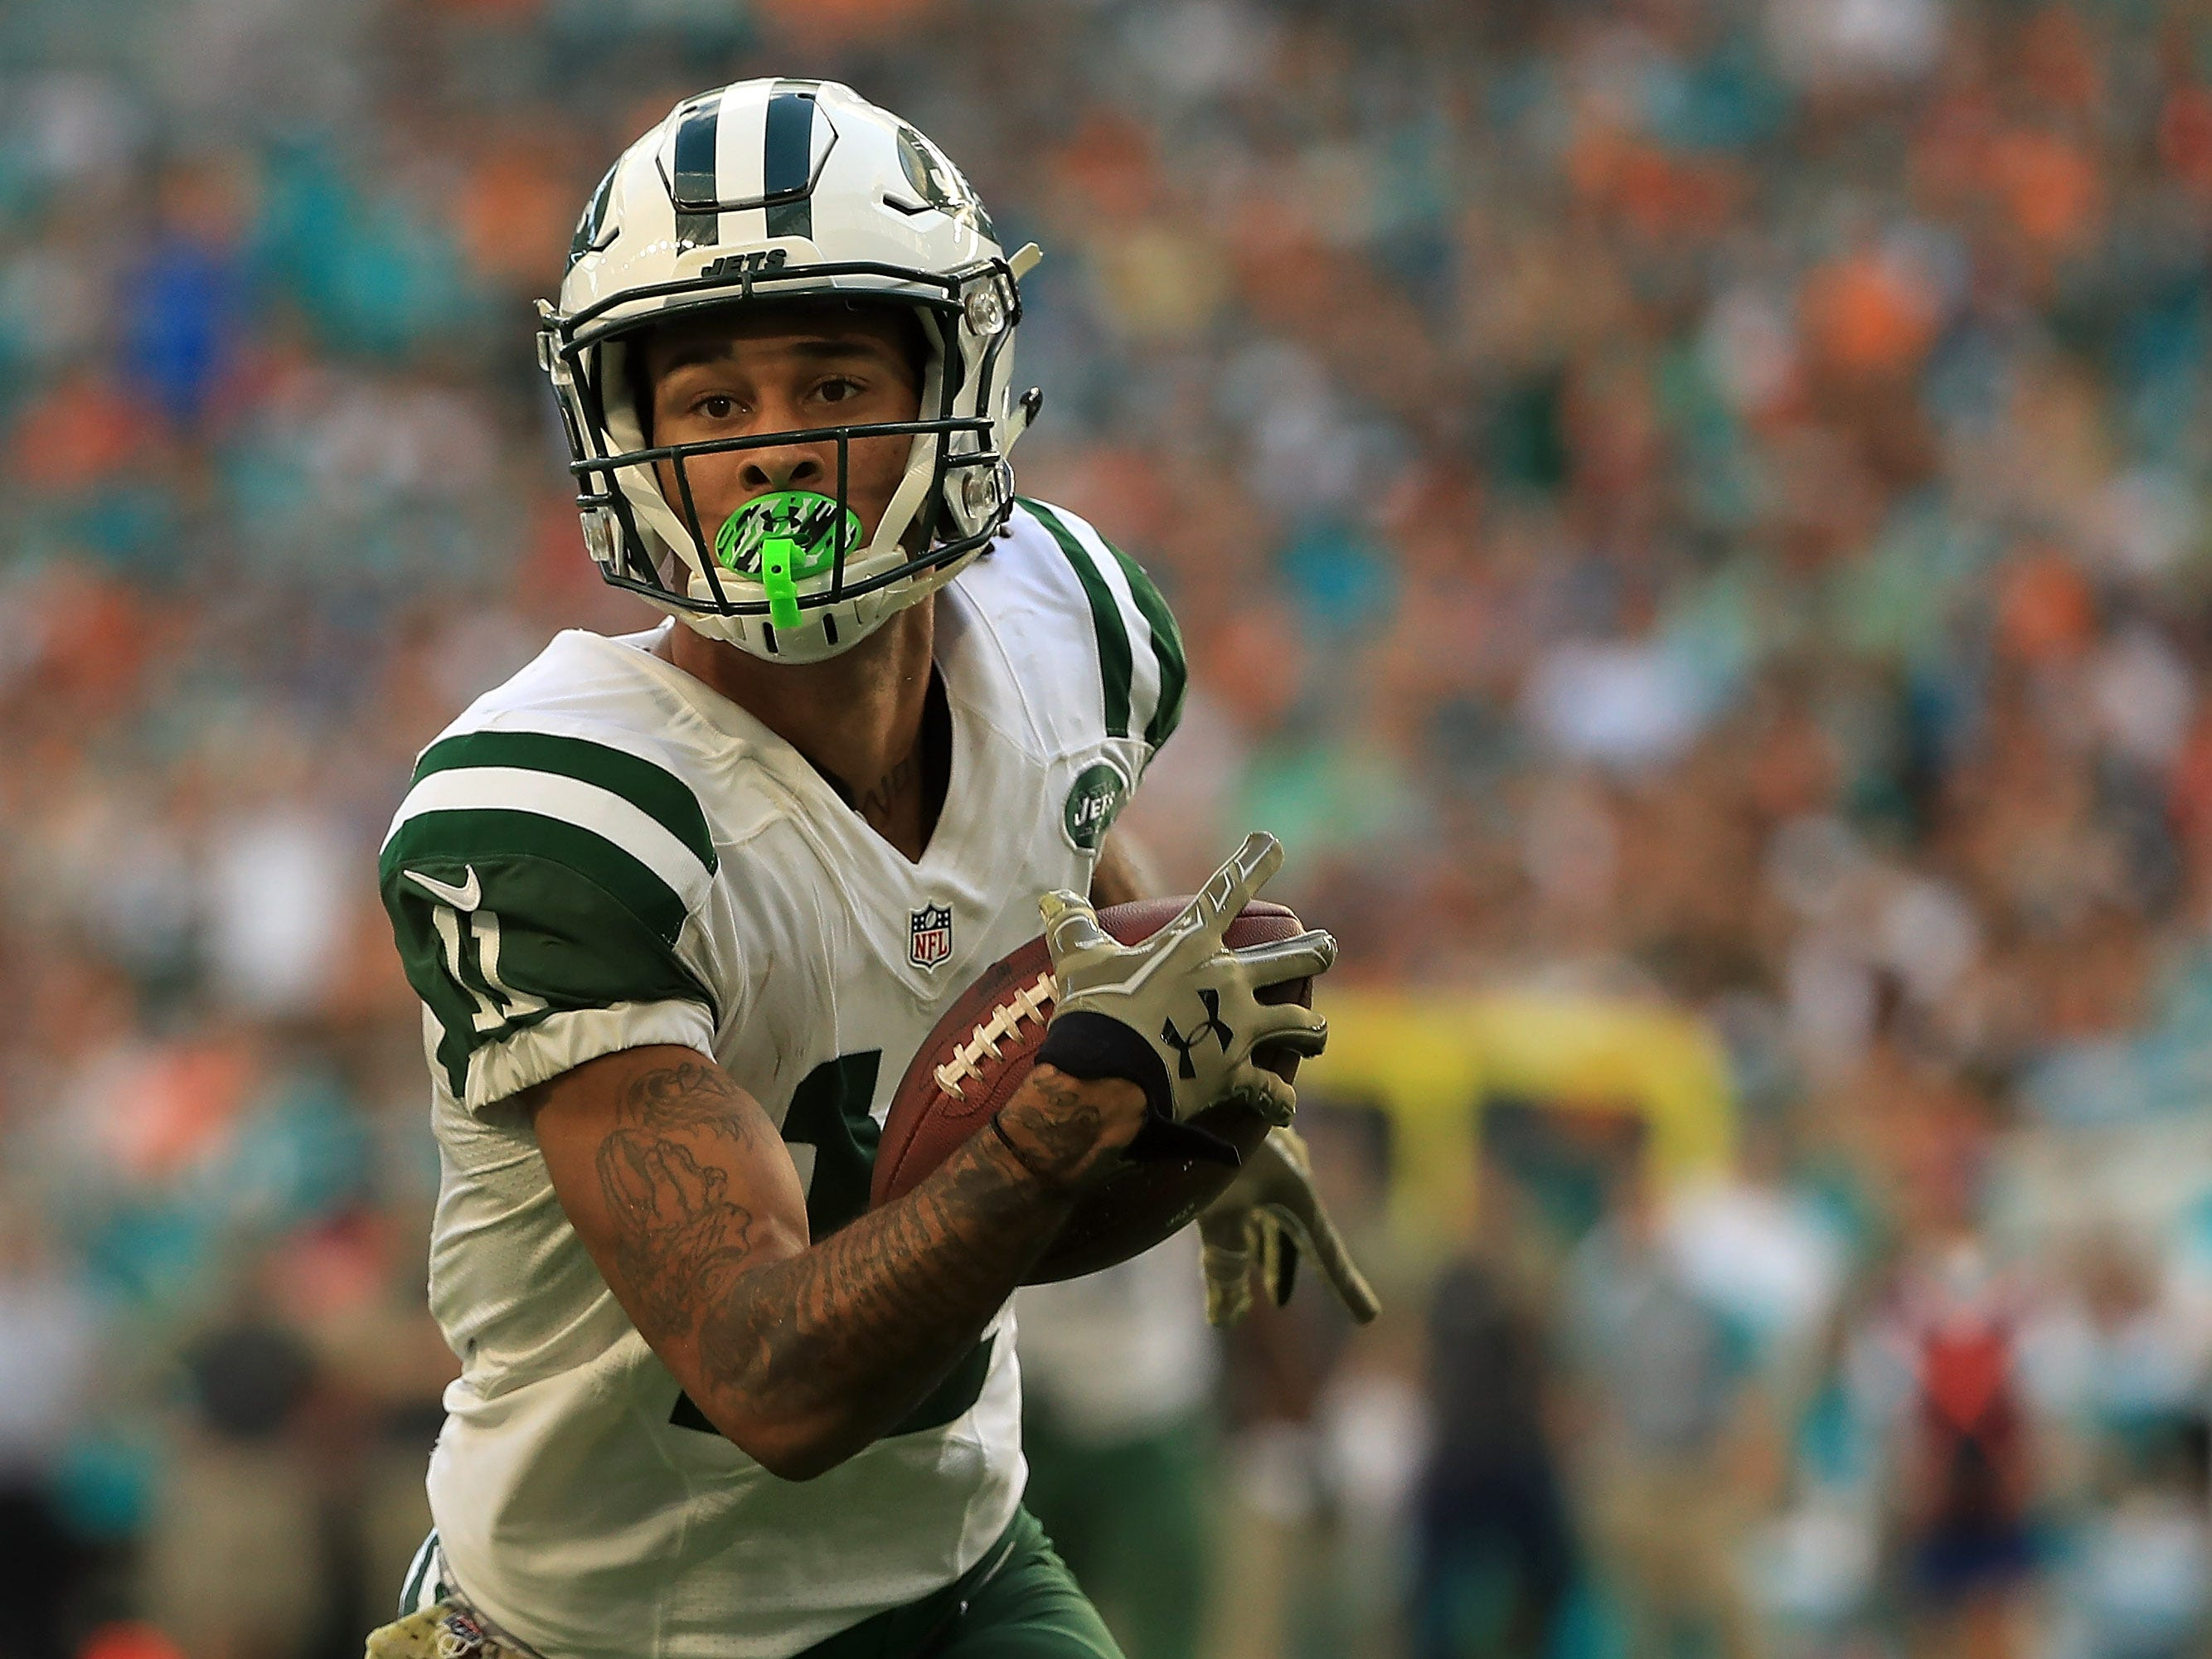 Robby Anderson, WR, New York Jets: There are off-field issues to consider with Anderson, but between the white lines, he's a big-play threat on the outside. Anderson has averaged 14.7 yards per reception during his three seasons with the Jets and he's had a catch of 25 yards or longer in 21 of his 46 games.